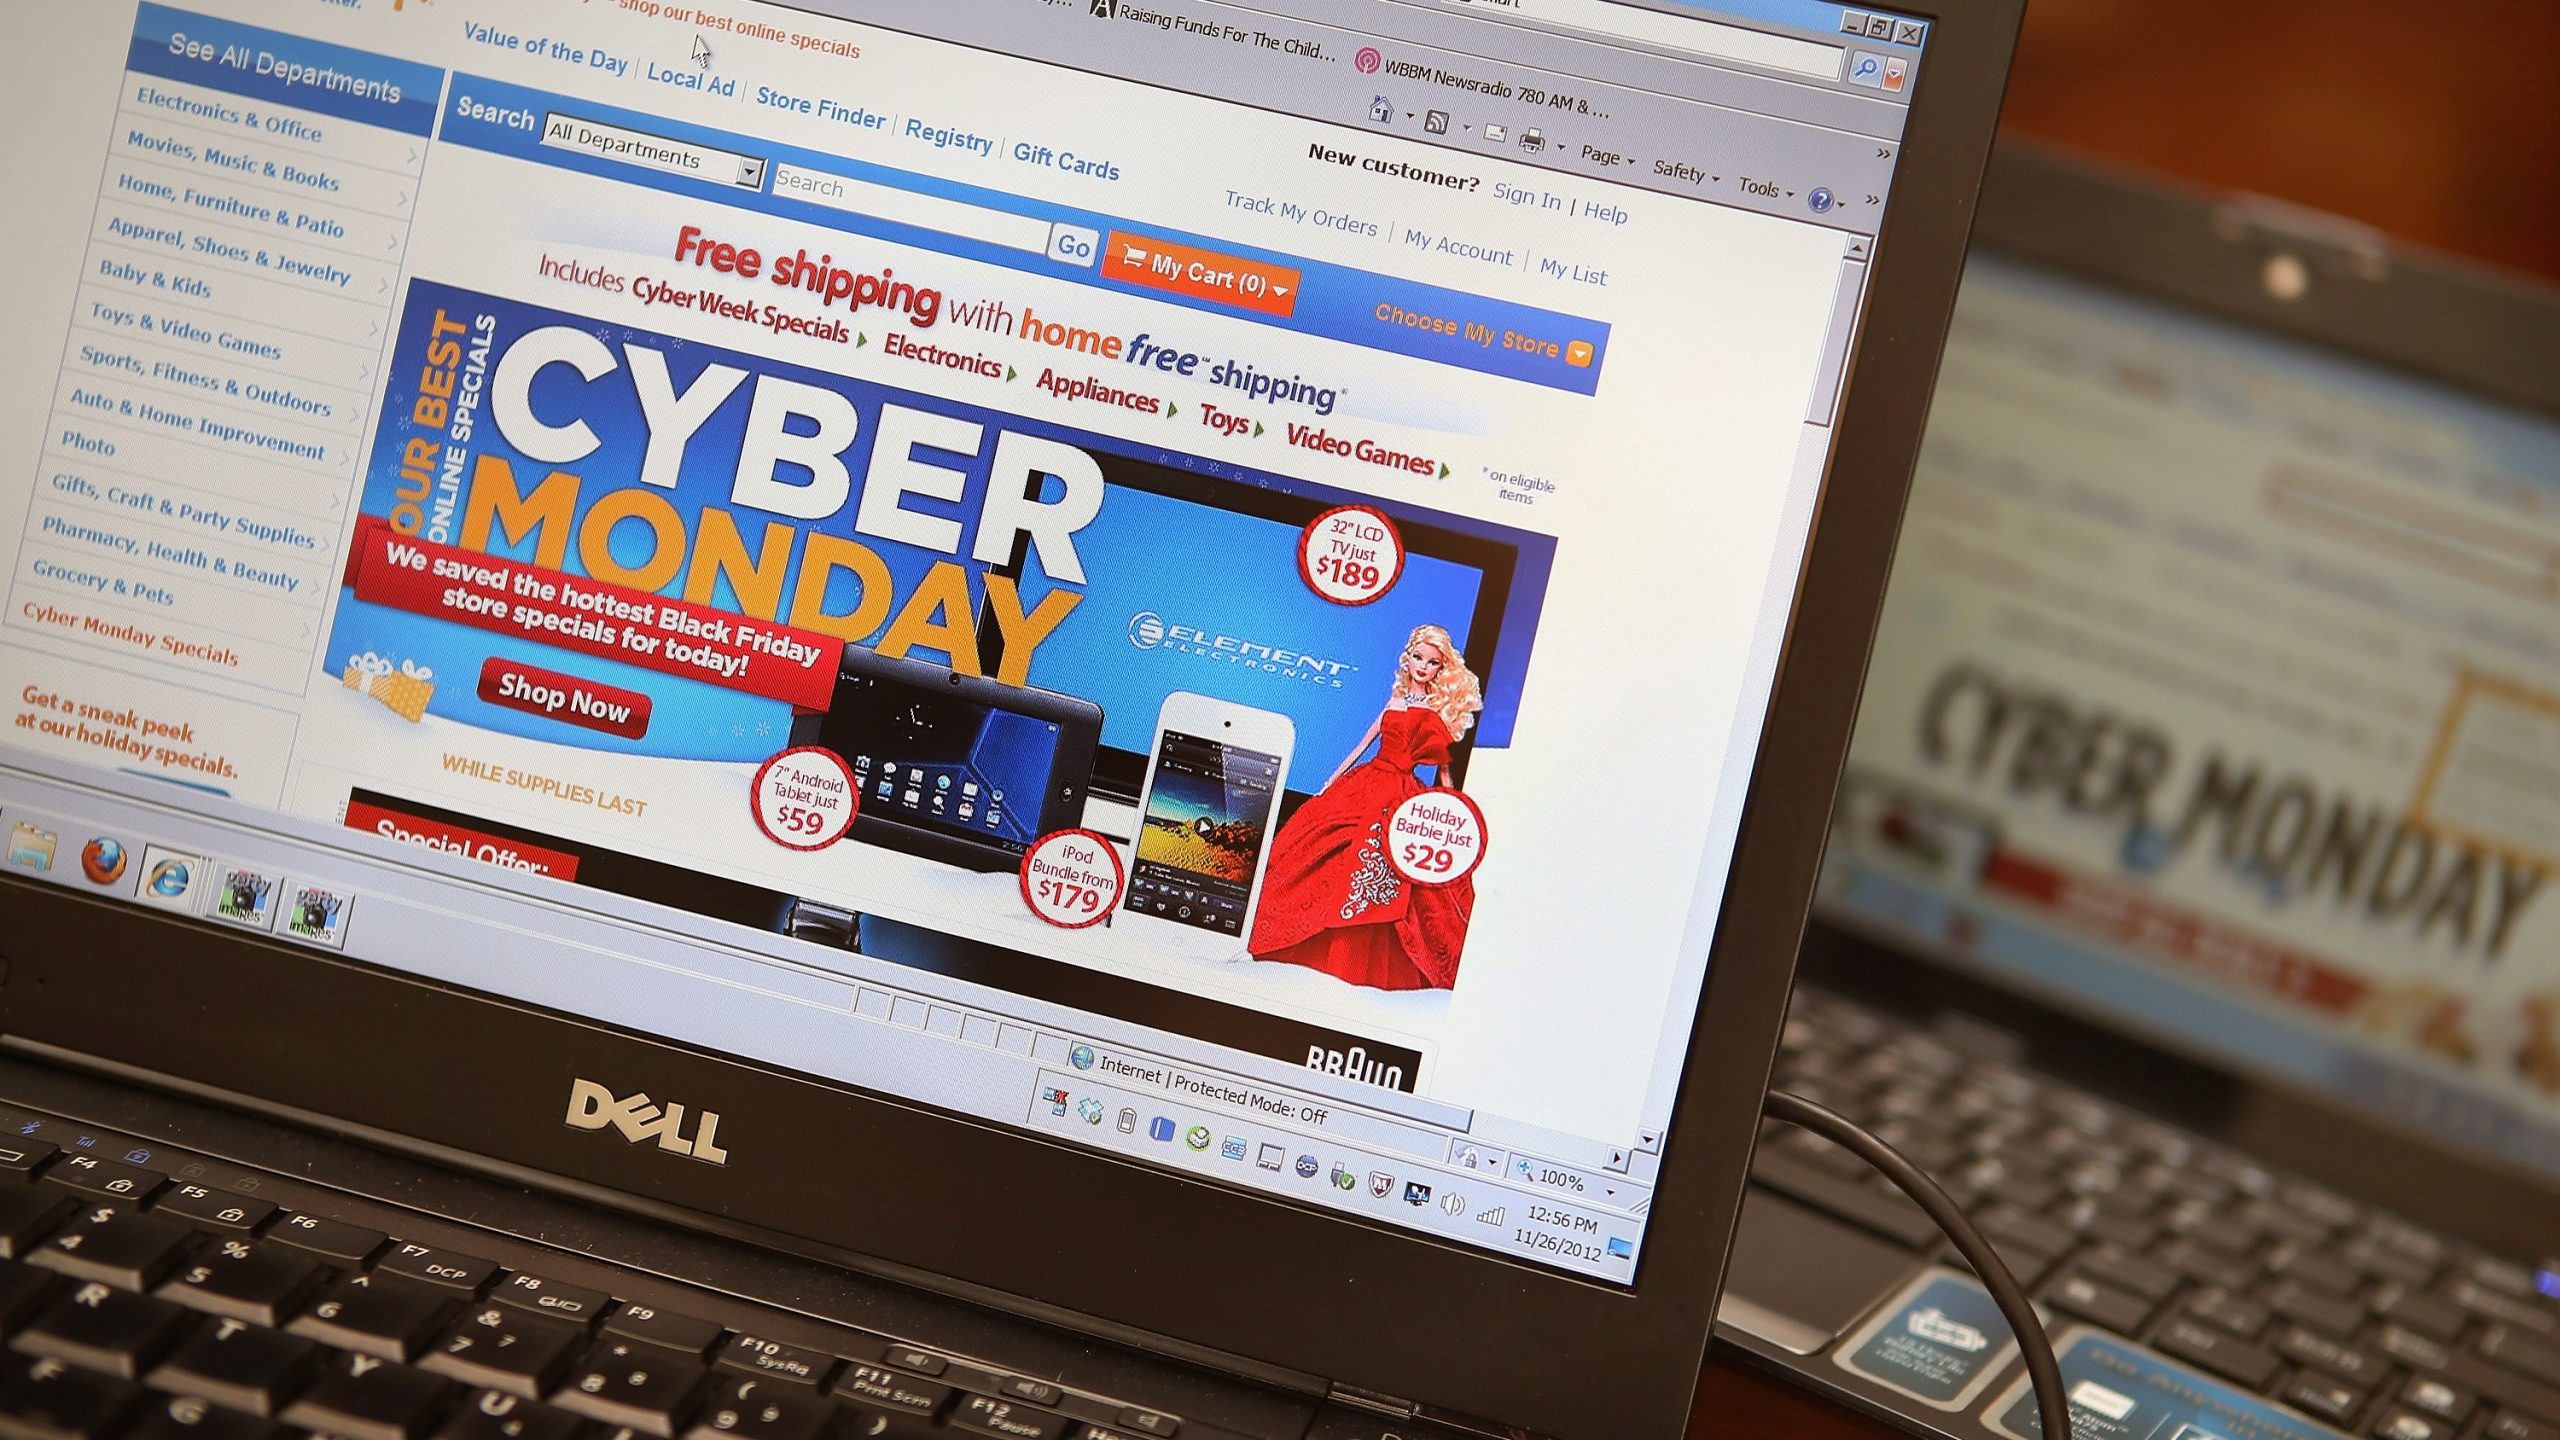 Retailers advertise Cyber Monday deals on their websites on November 26, 2012 in Chicago, Illinois. (Credit: Scott Olson/Getty Images)